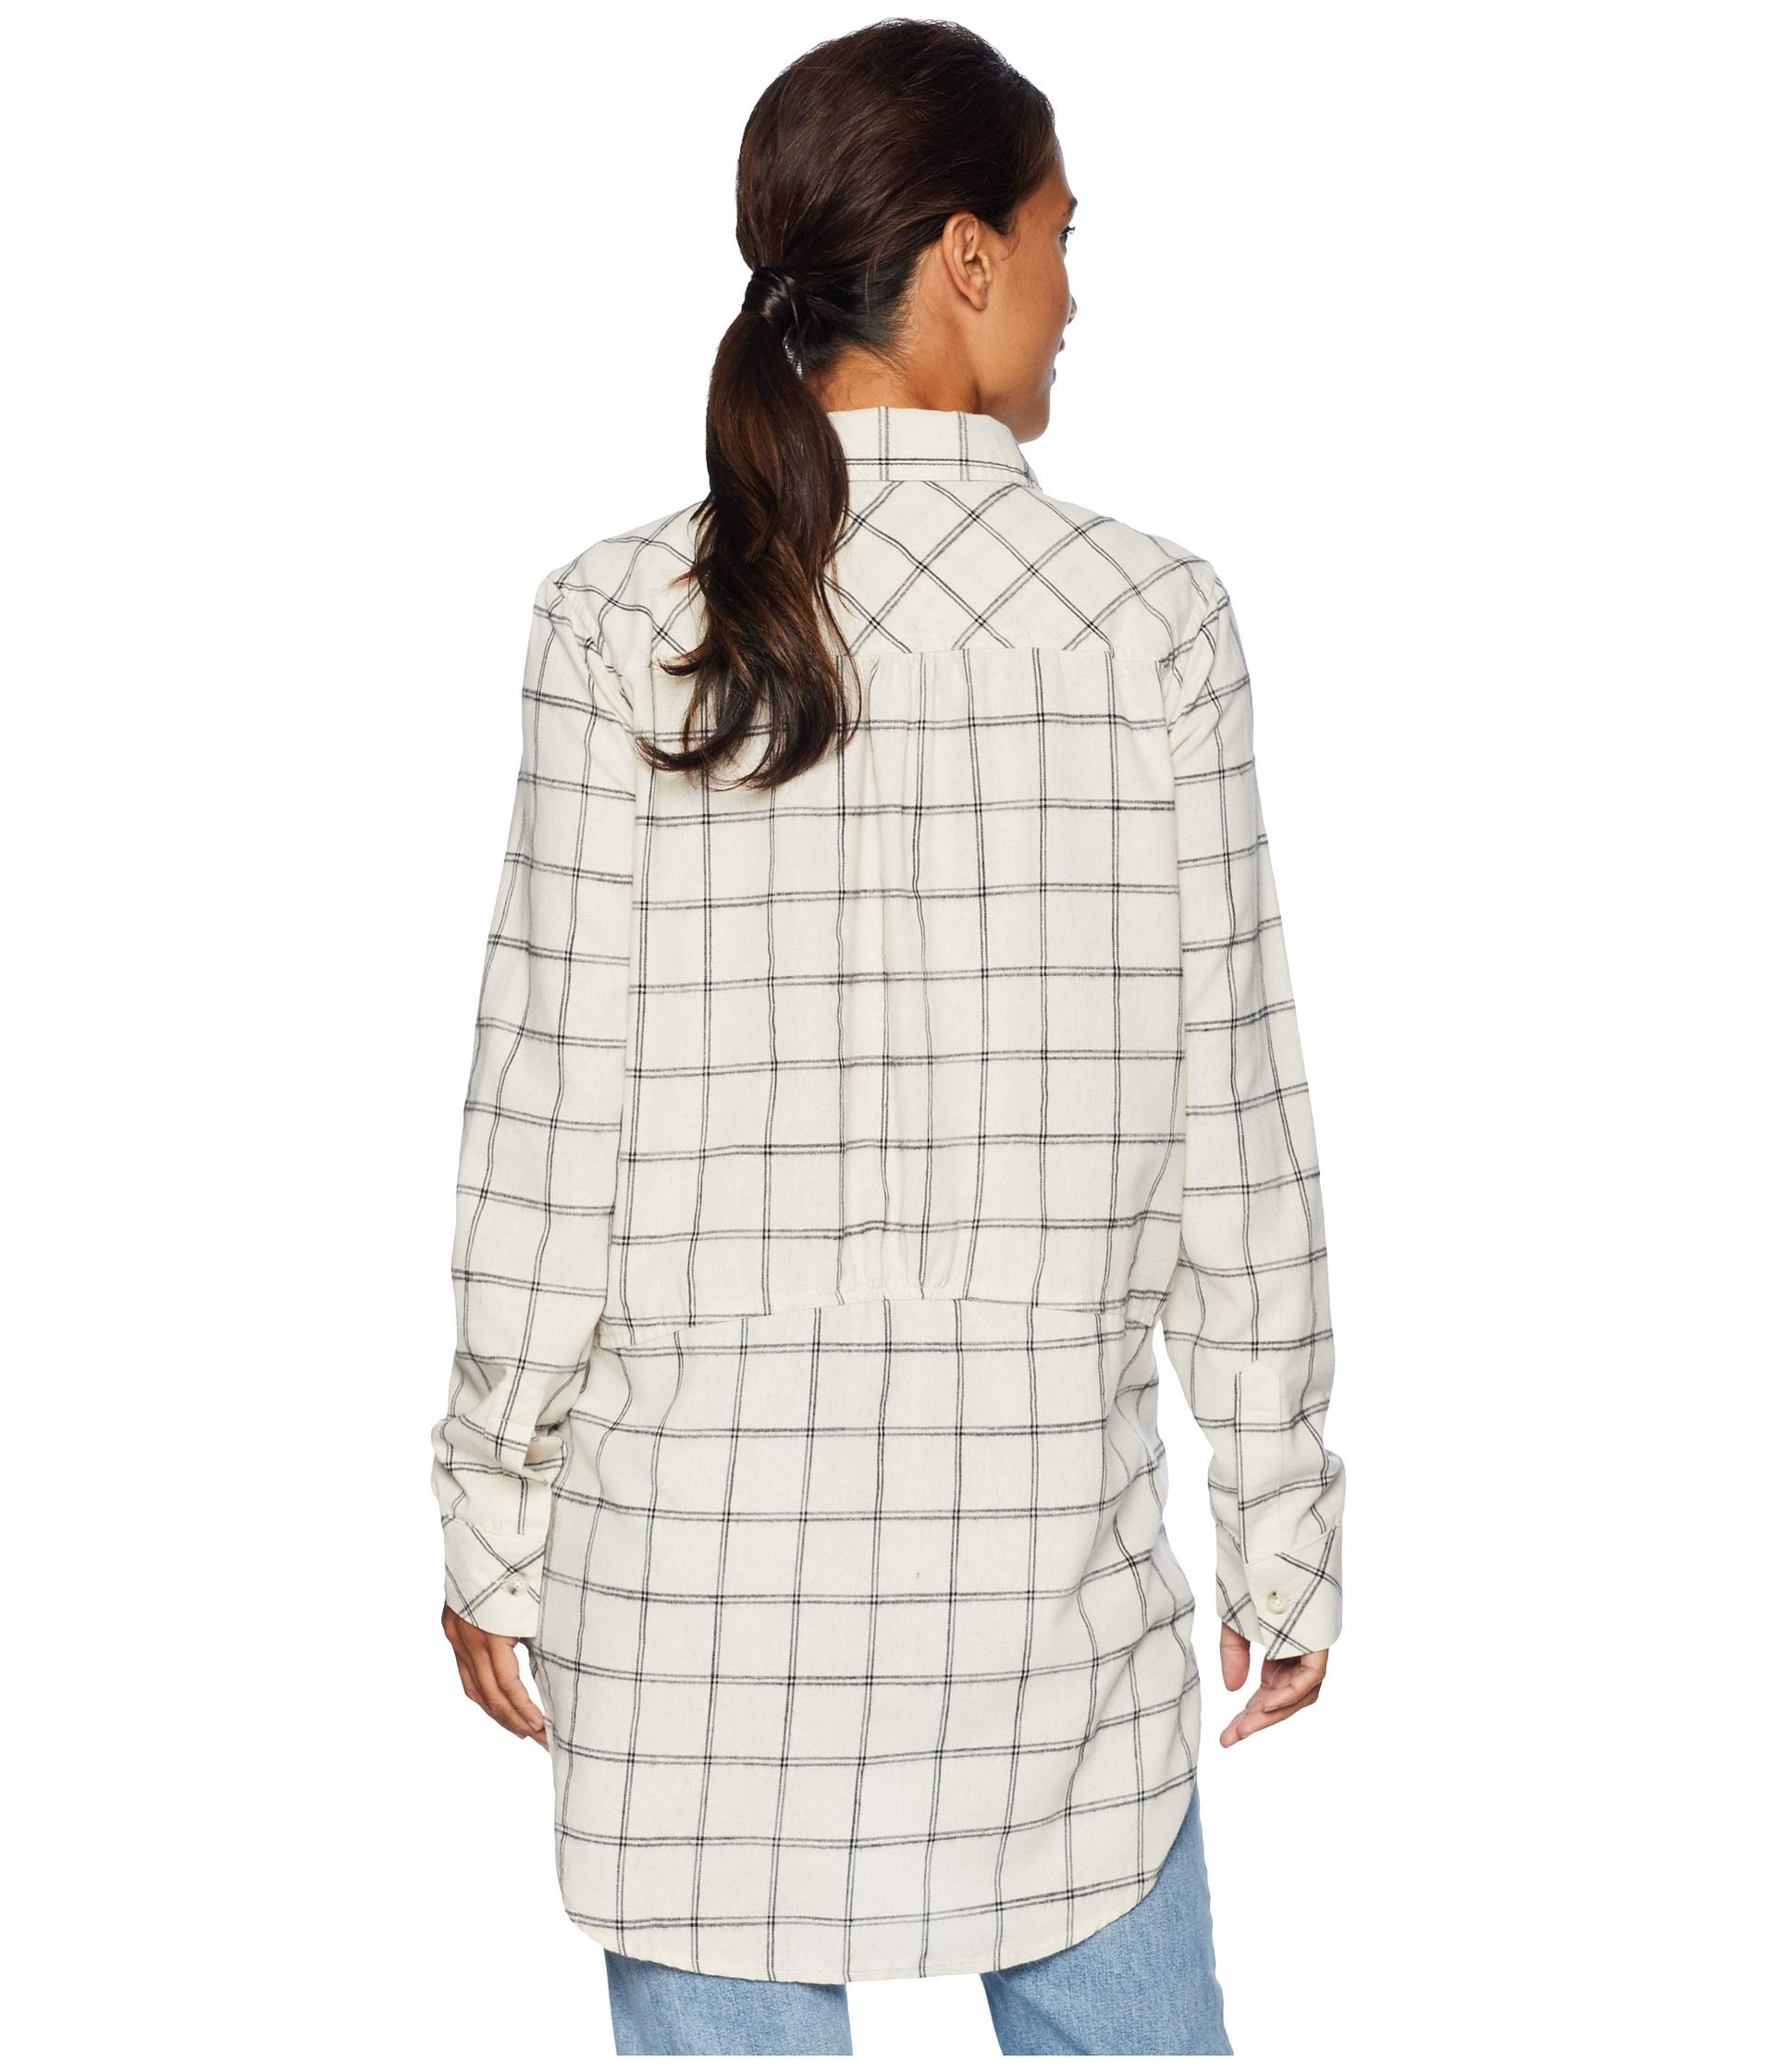 Pockets Shirt Windowpane White With Button Mod Winter doc Plaid Long Sleeve Front o Flannel qwTHUPxgB